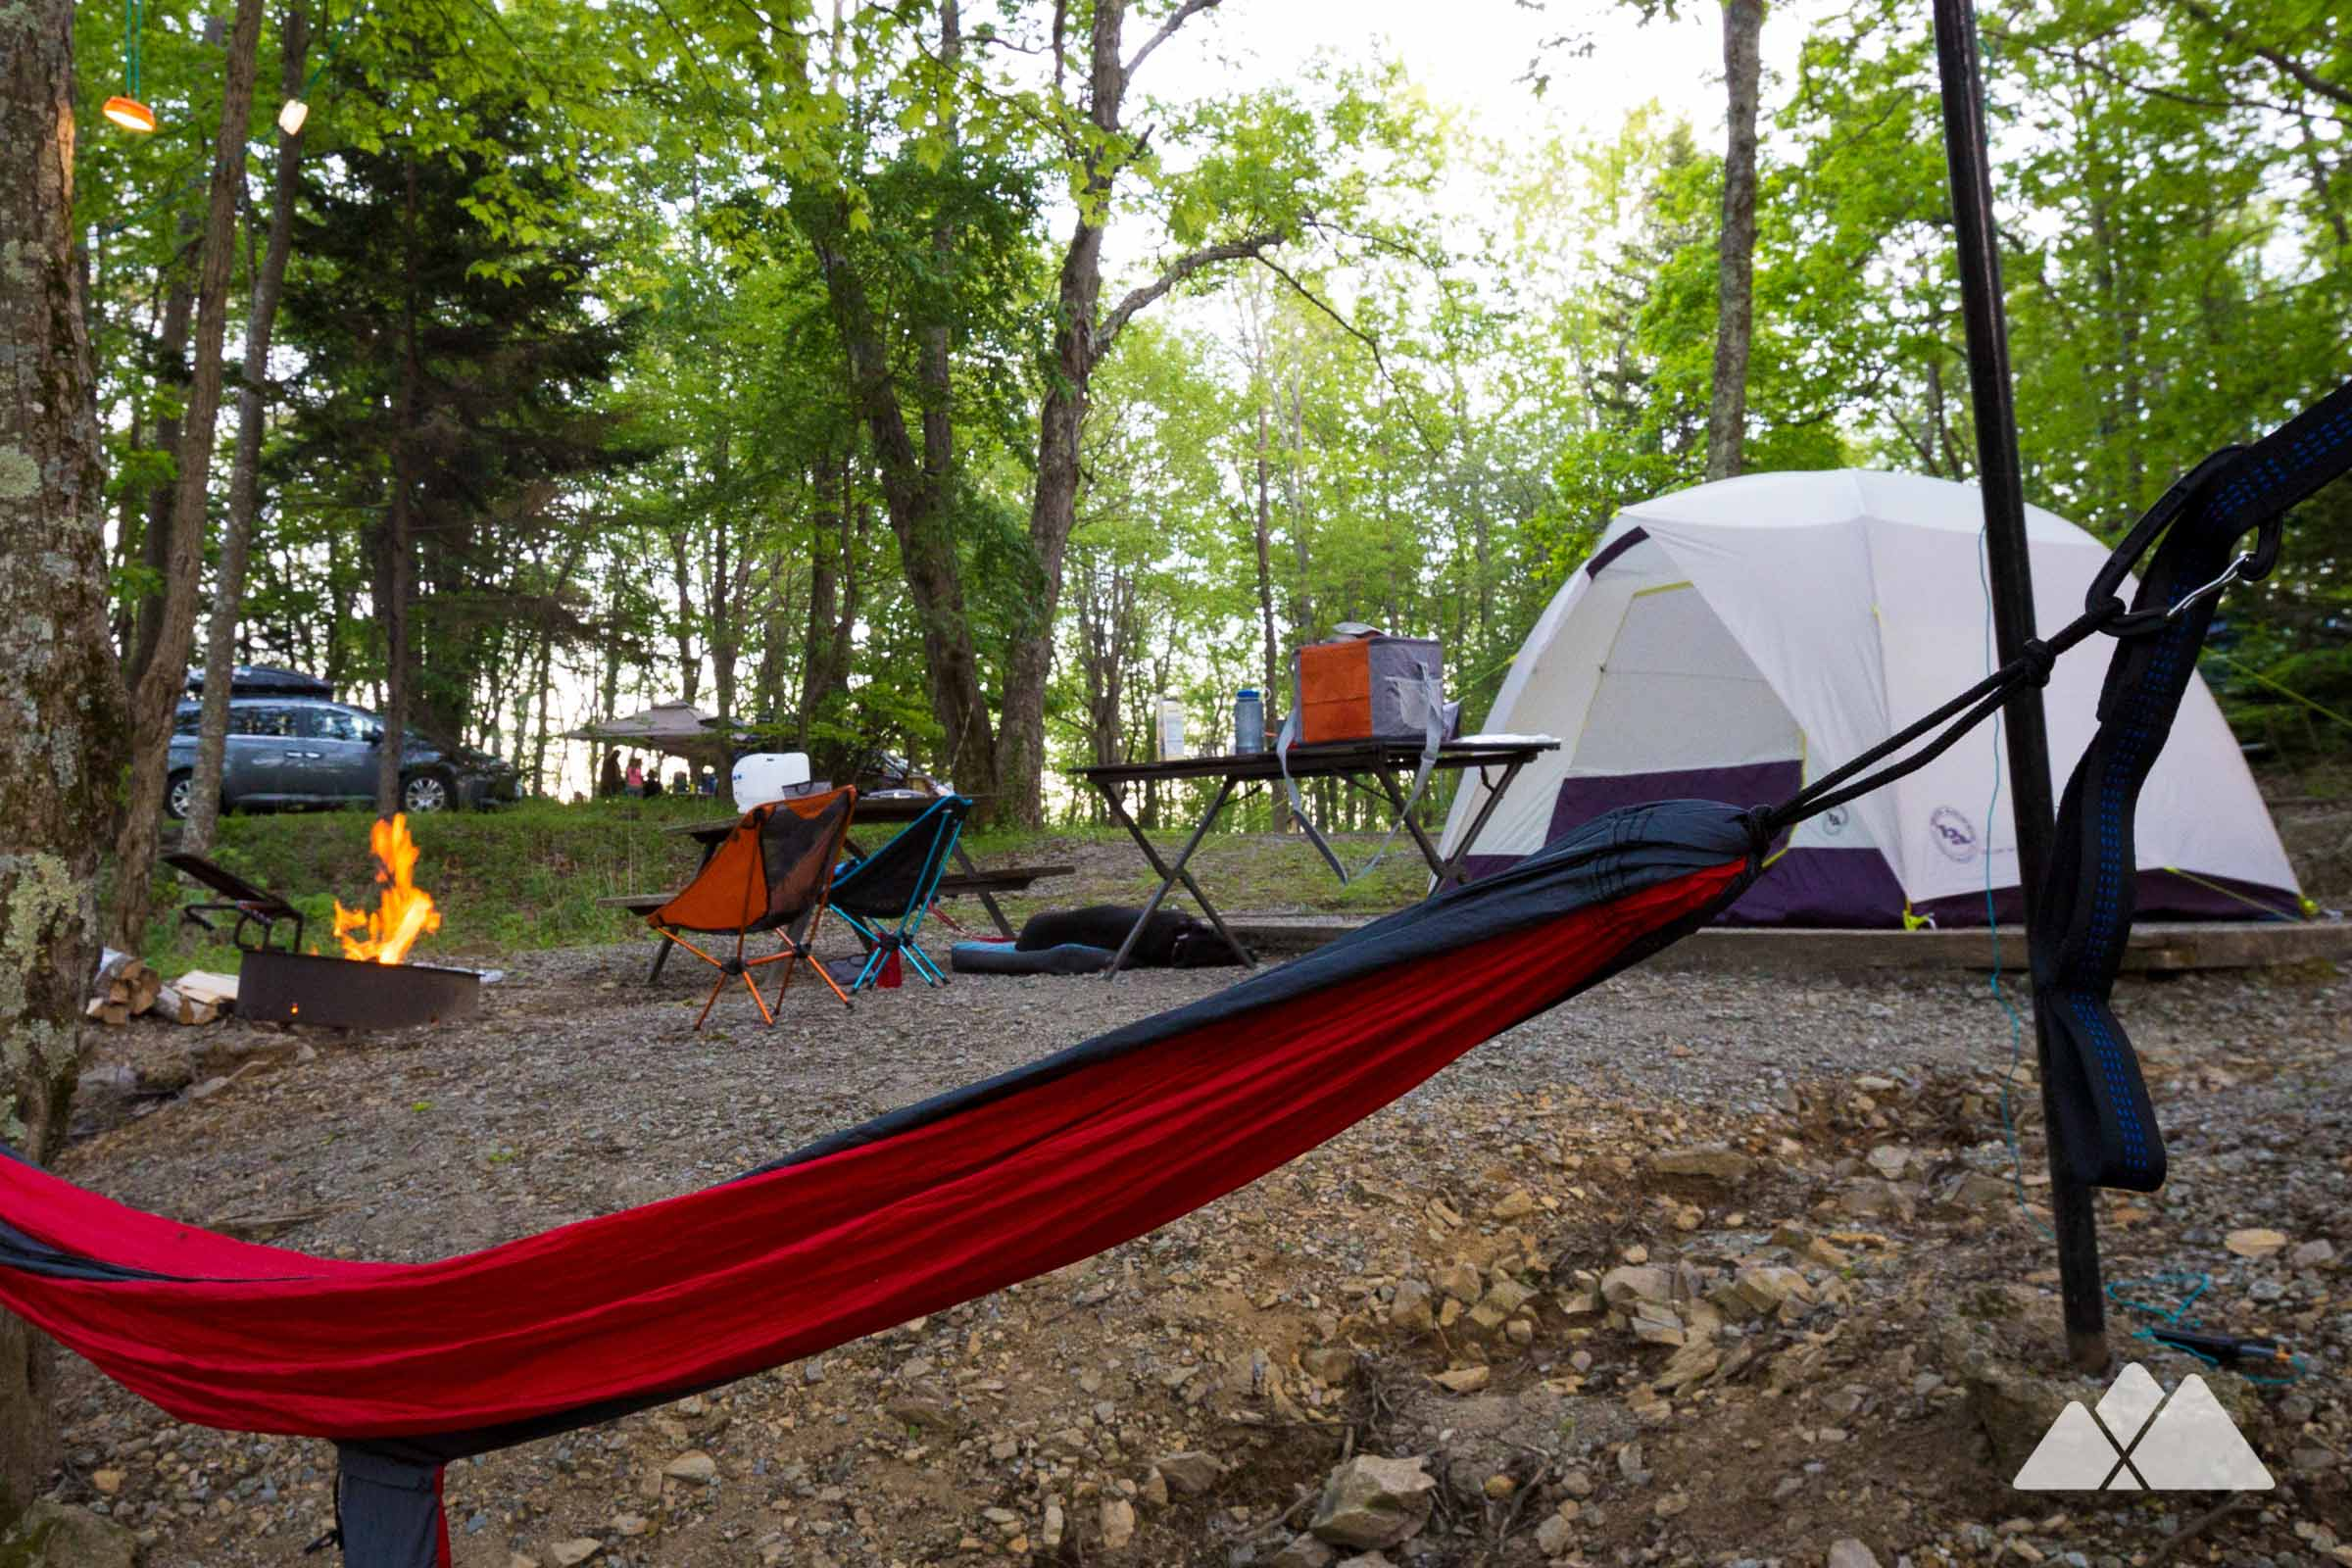 Preparing For Your Family Camping Trip